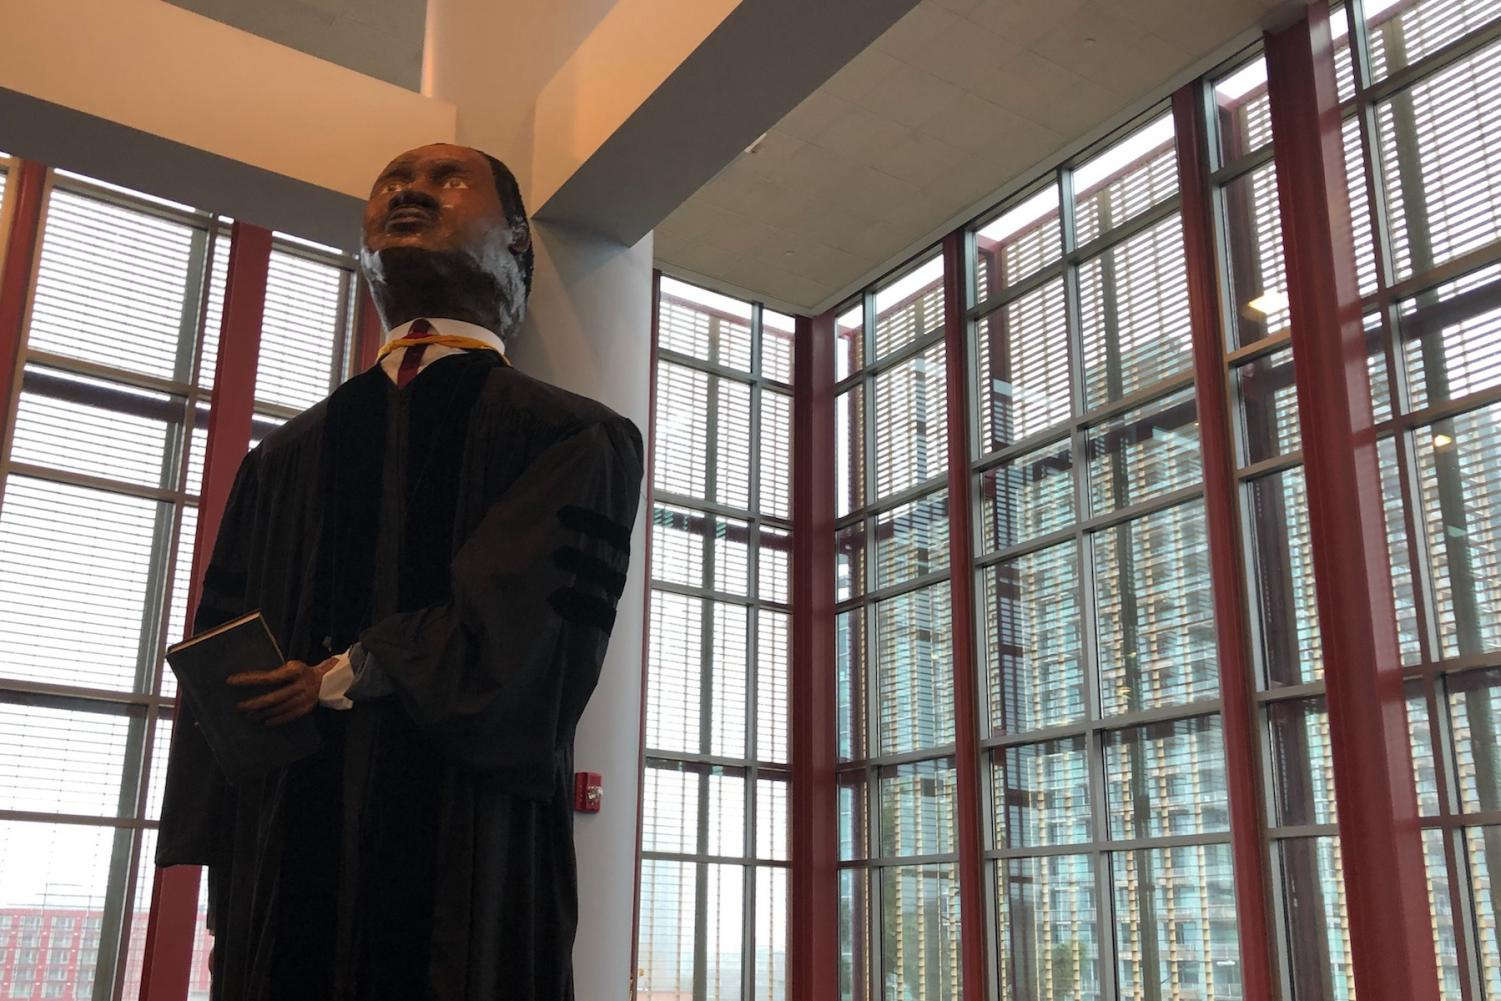 A Martin Luther King Jr. figure is located inside the Learning Resource Center as a commemoration for Black History Month. Art professor Duane Gardella created the likeness for City College's MLK Parade float. It will be on display until April 15. By Elisabeth Vermeulen/City Times